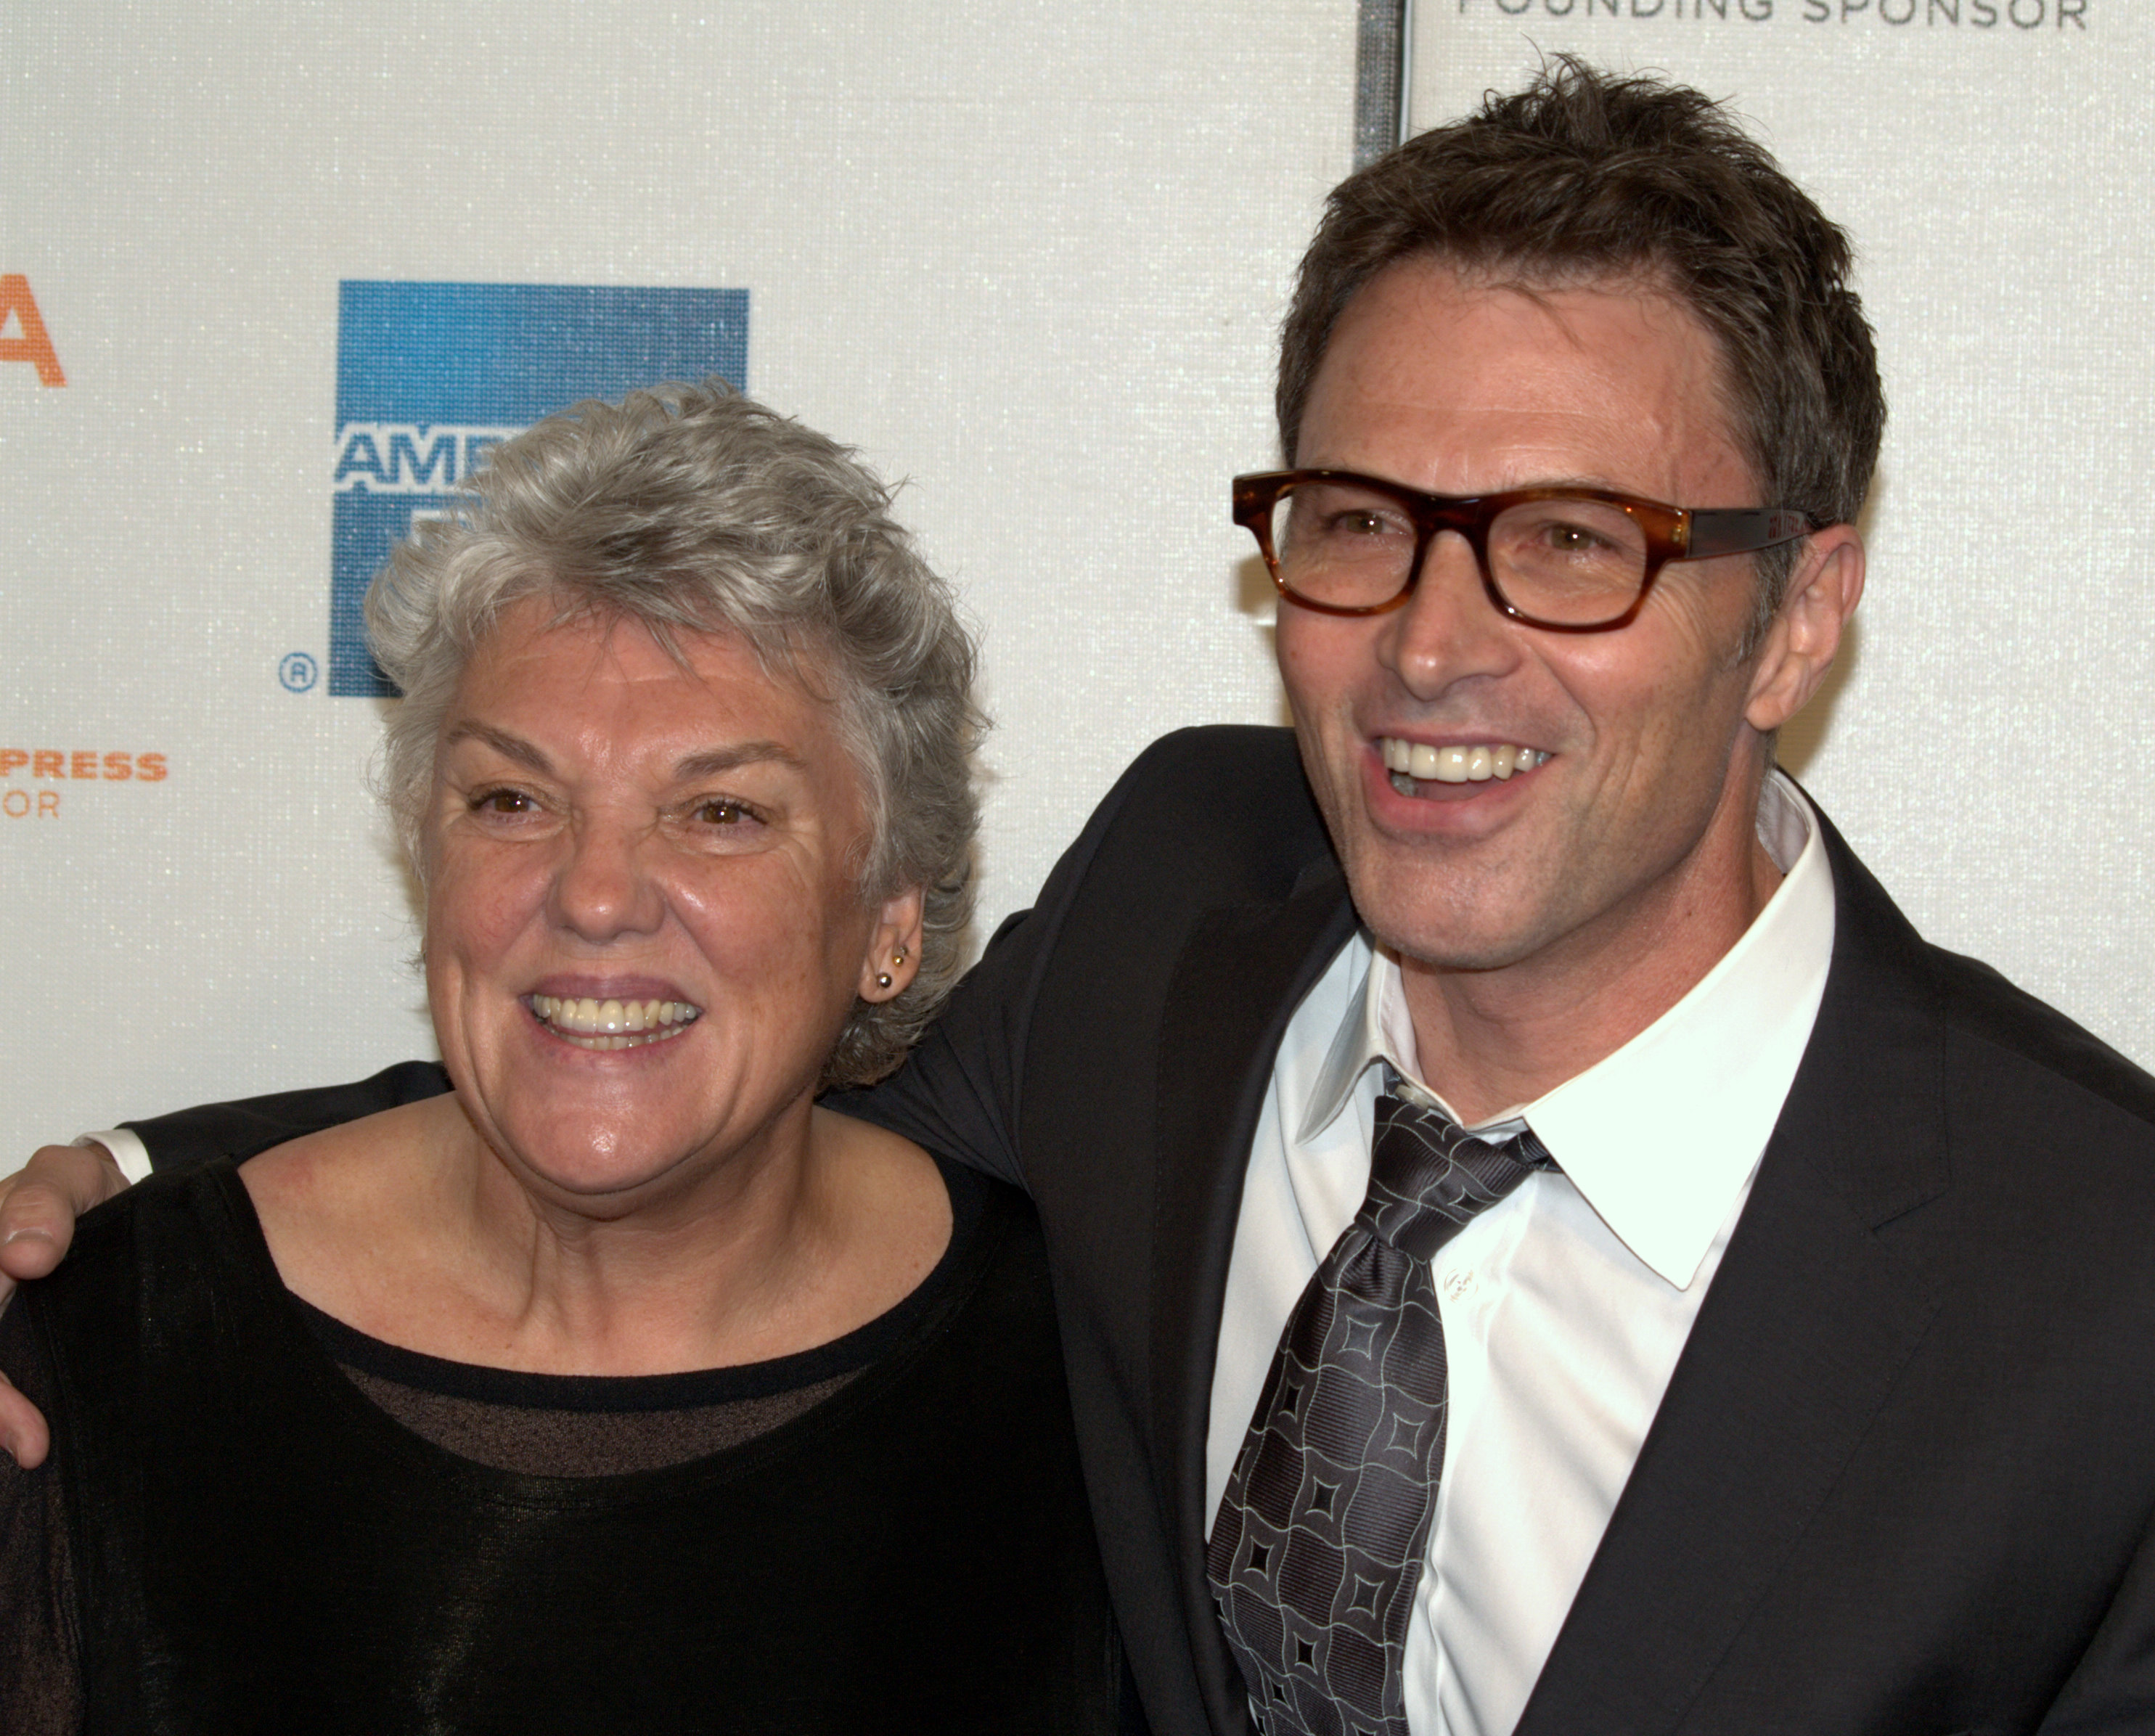 Tyne_Daly_and_Tim_Daly_at_the_2009_Tribeca_Film_Festival